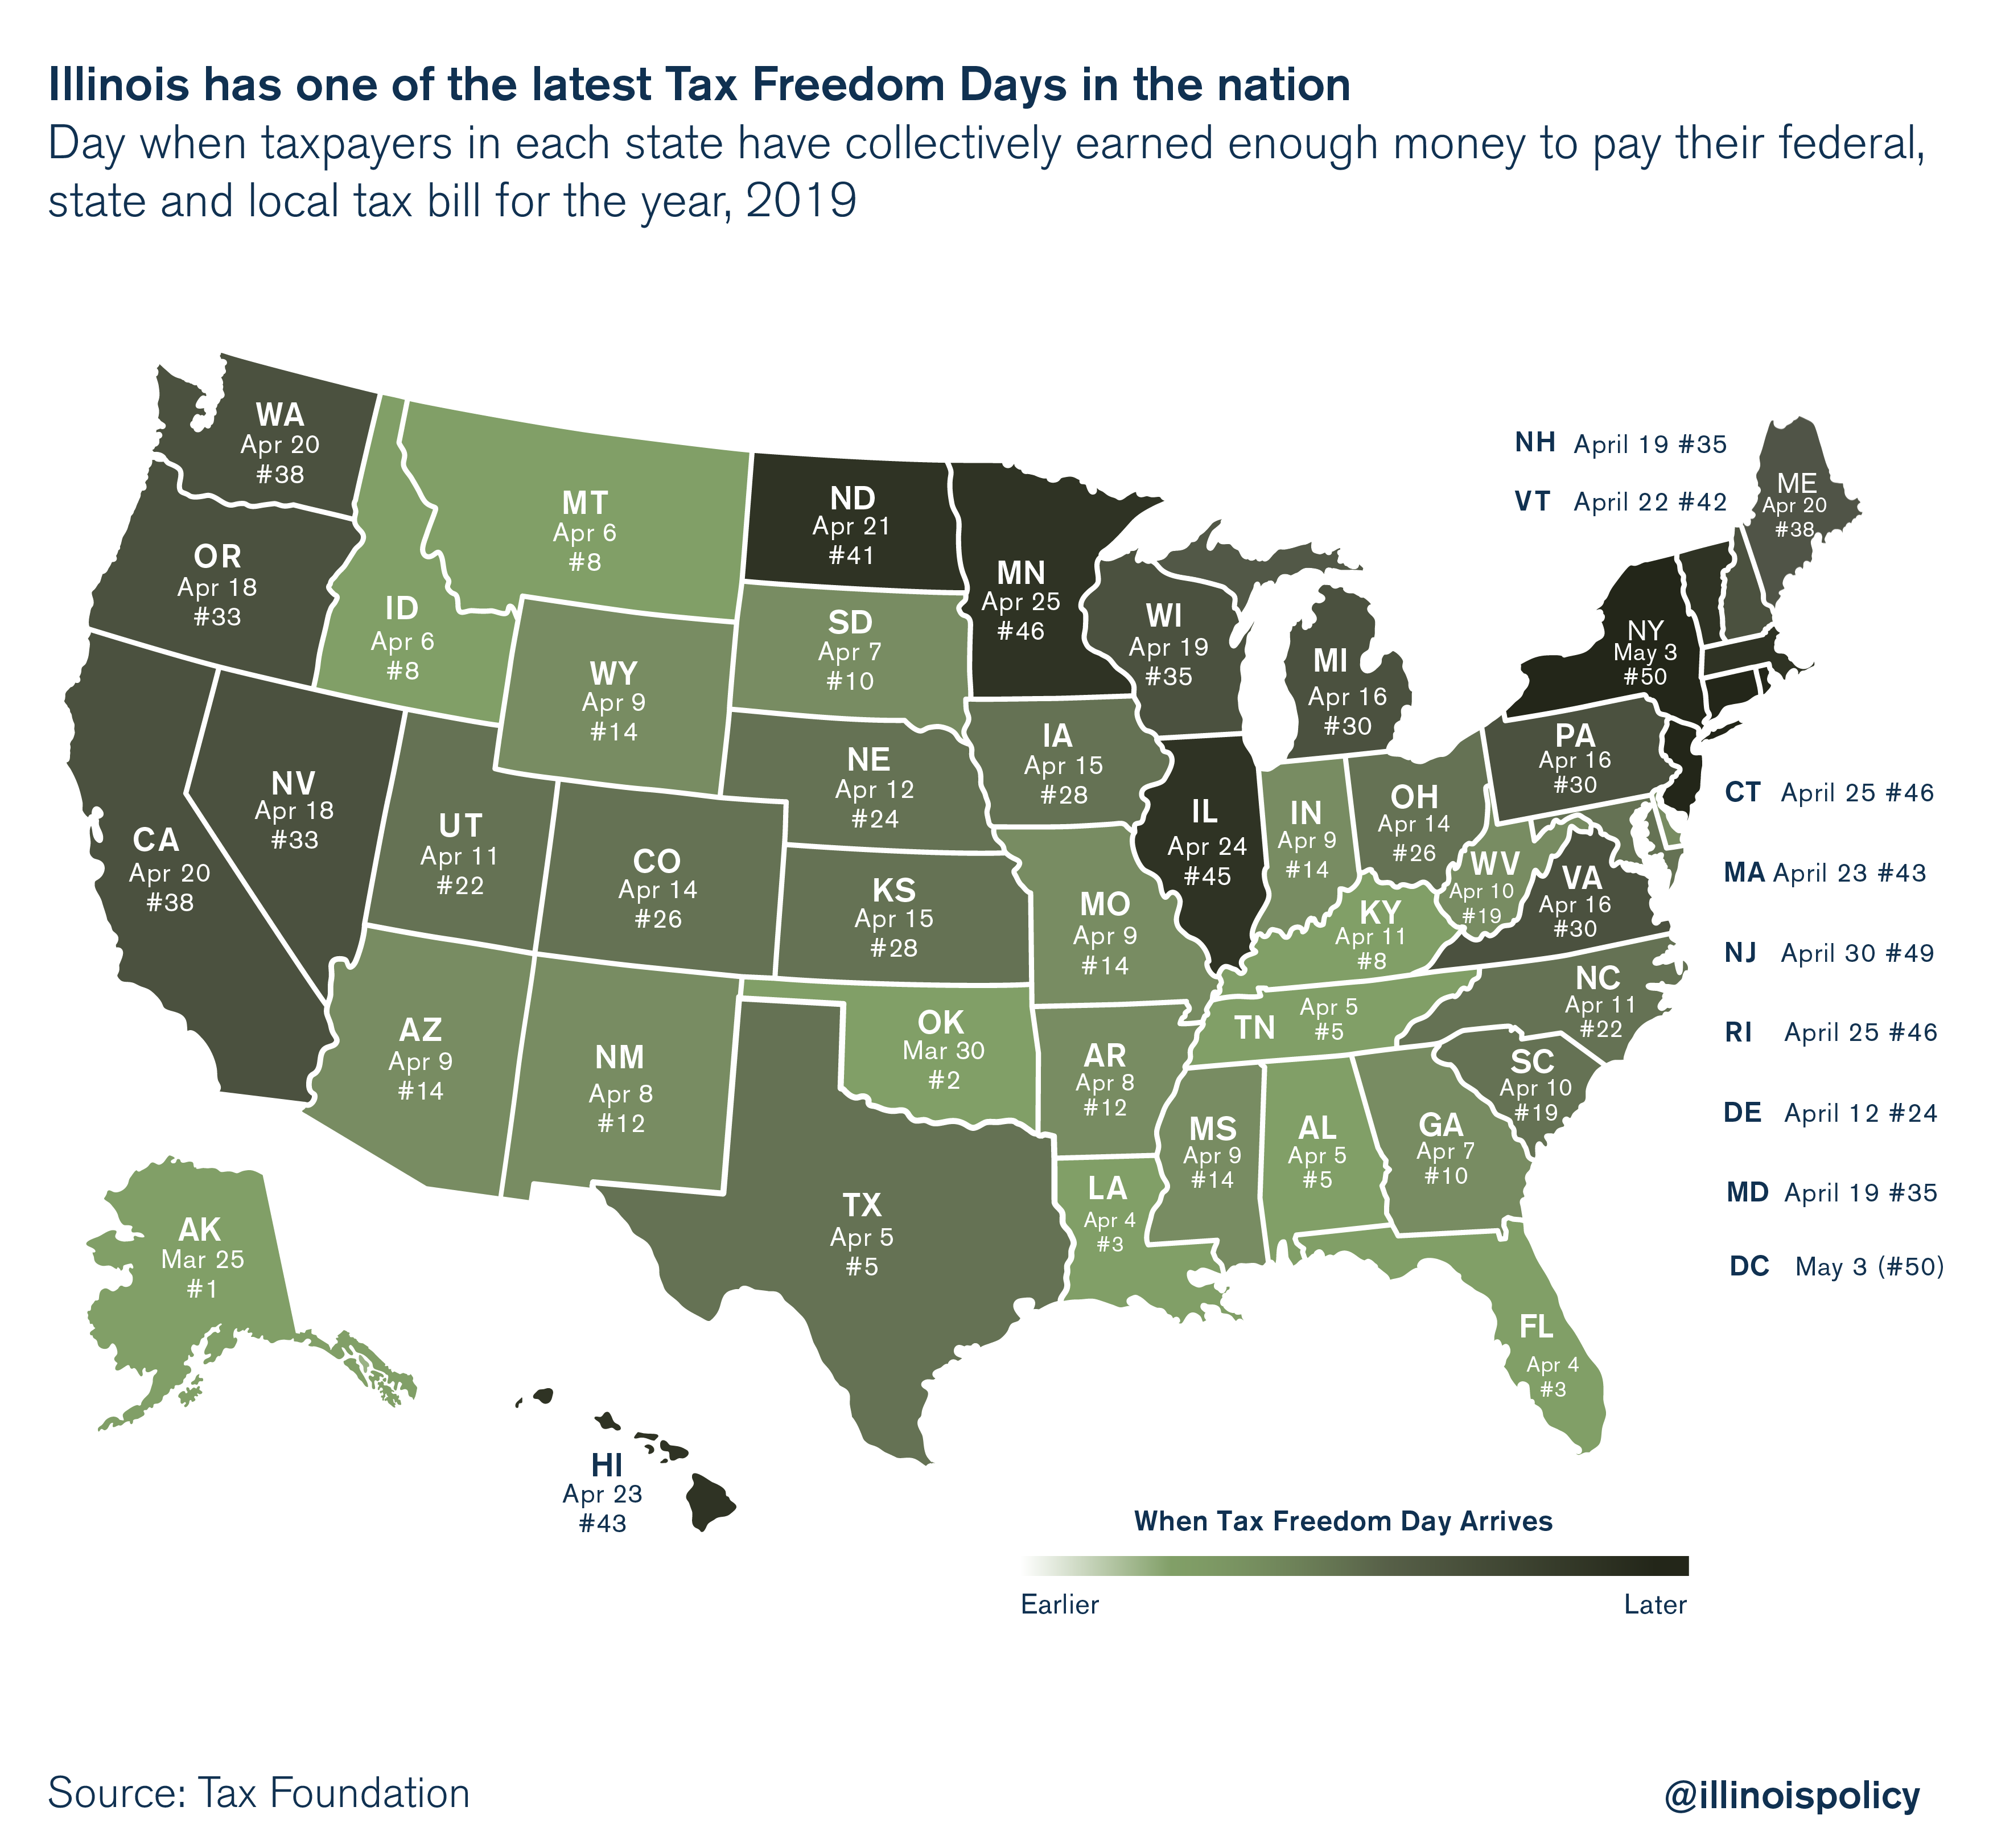 Illinois has one of the latest Tax Freedom Days in the nation